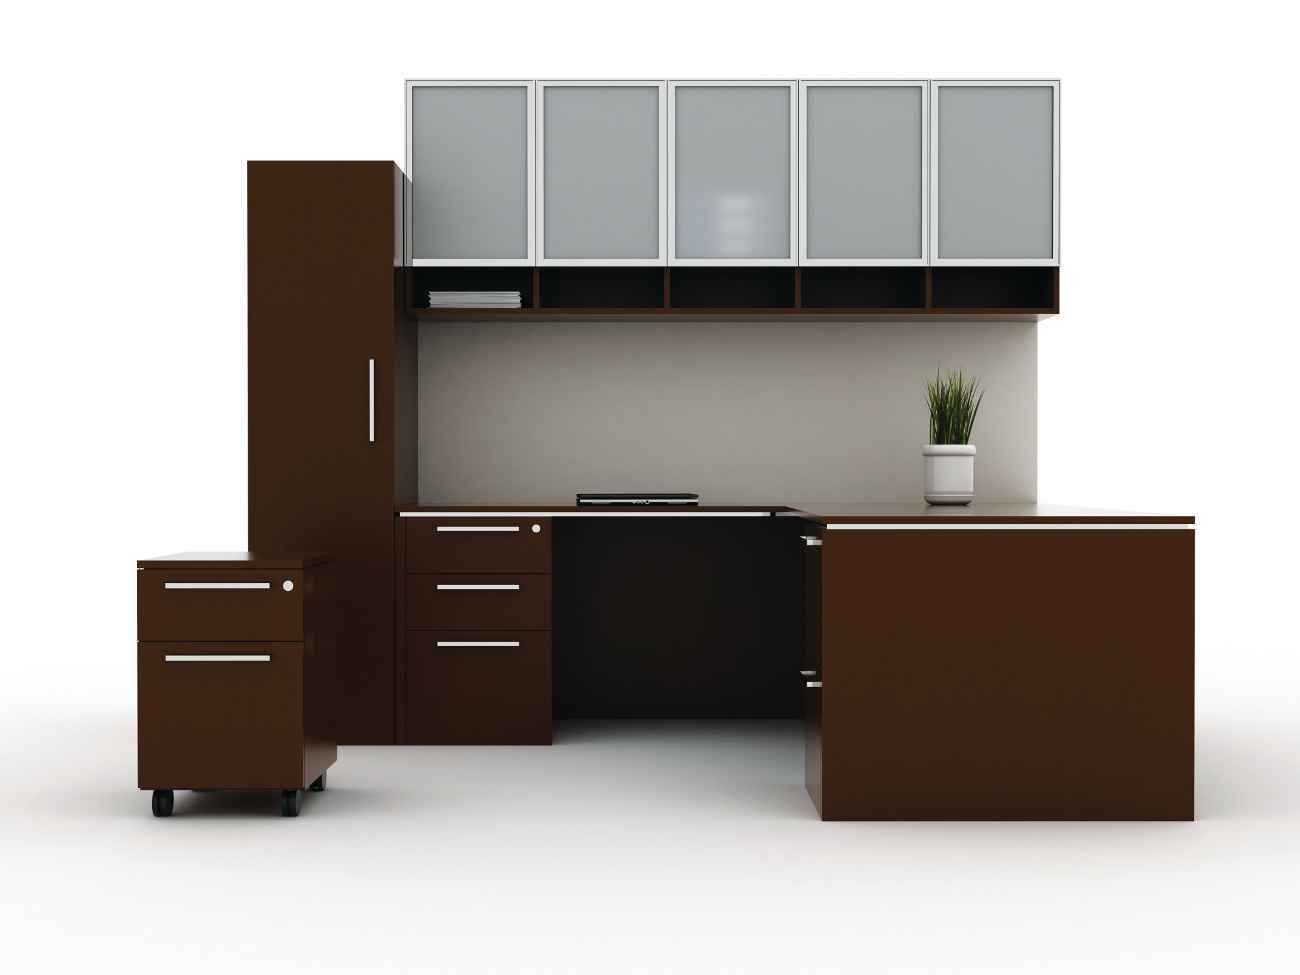 Design Modular Furniture Home Shanghai Home Office Furniture Modular Systems Furni Home Office Furniture Design Modular Home Office Furniture Modular Furniture